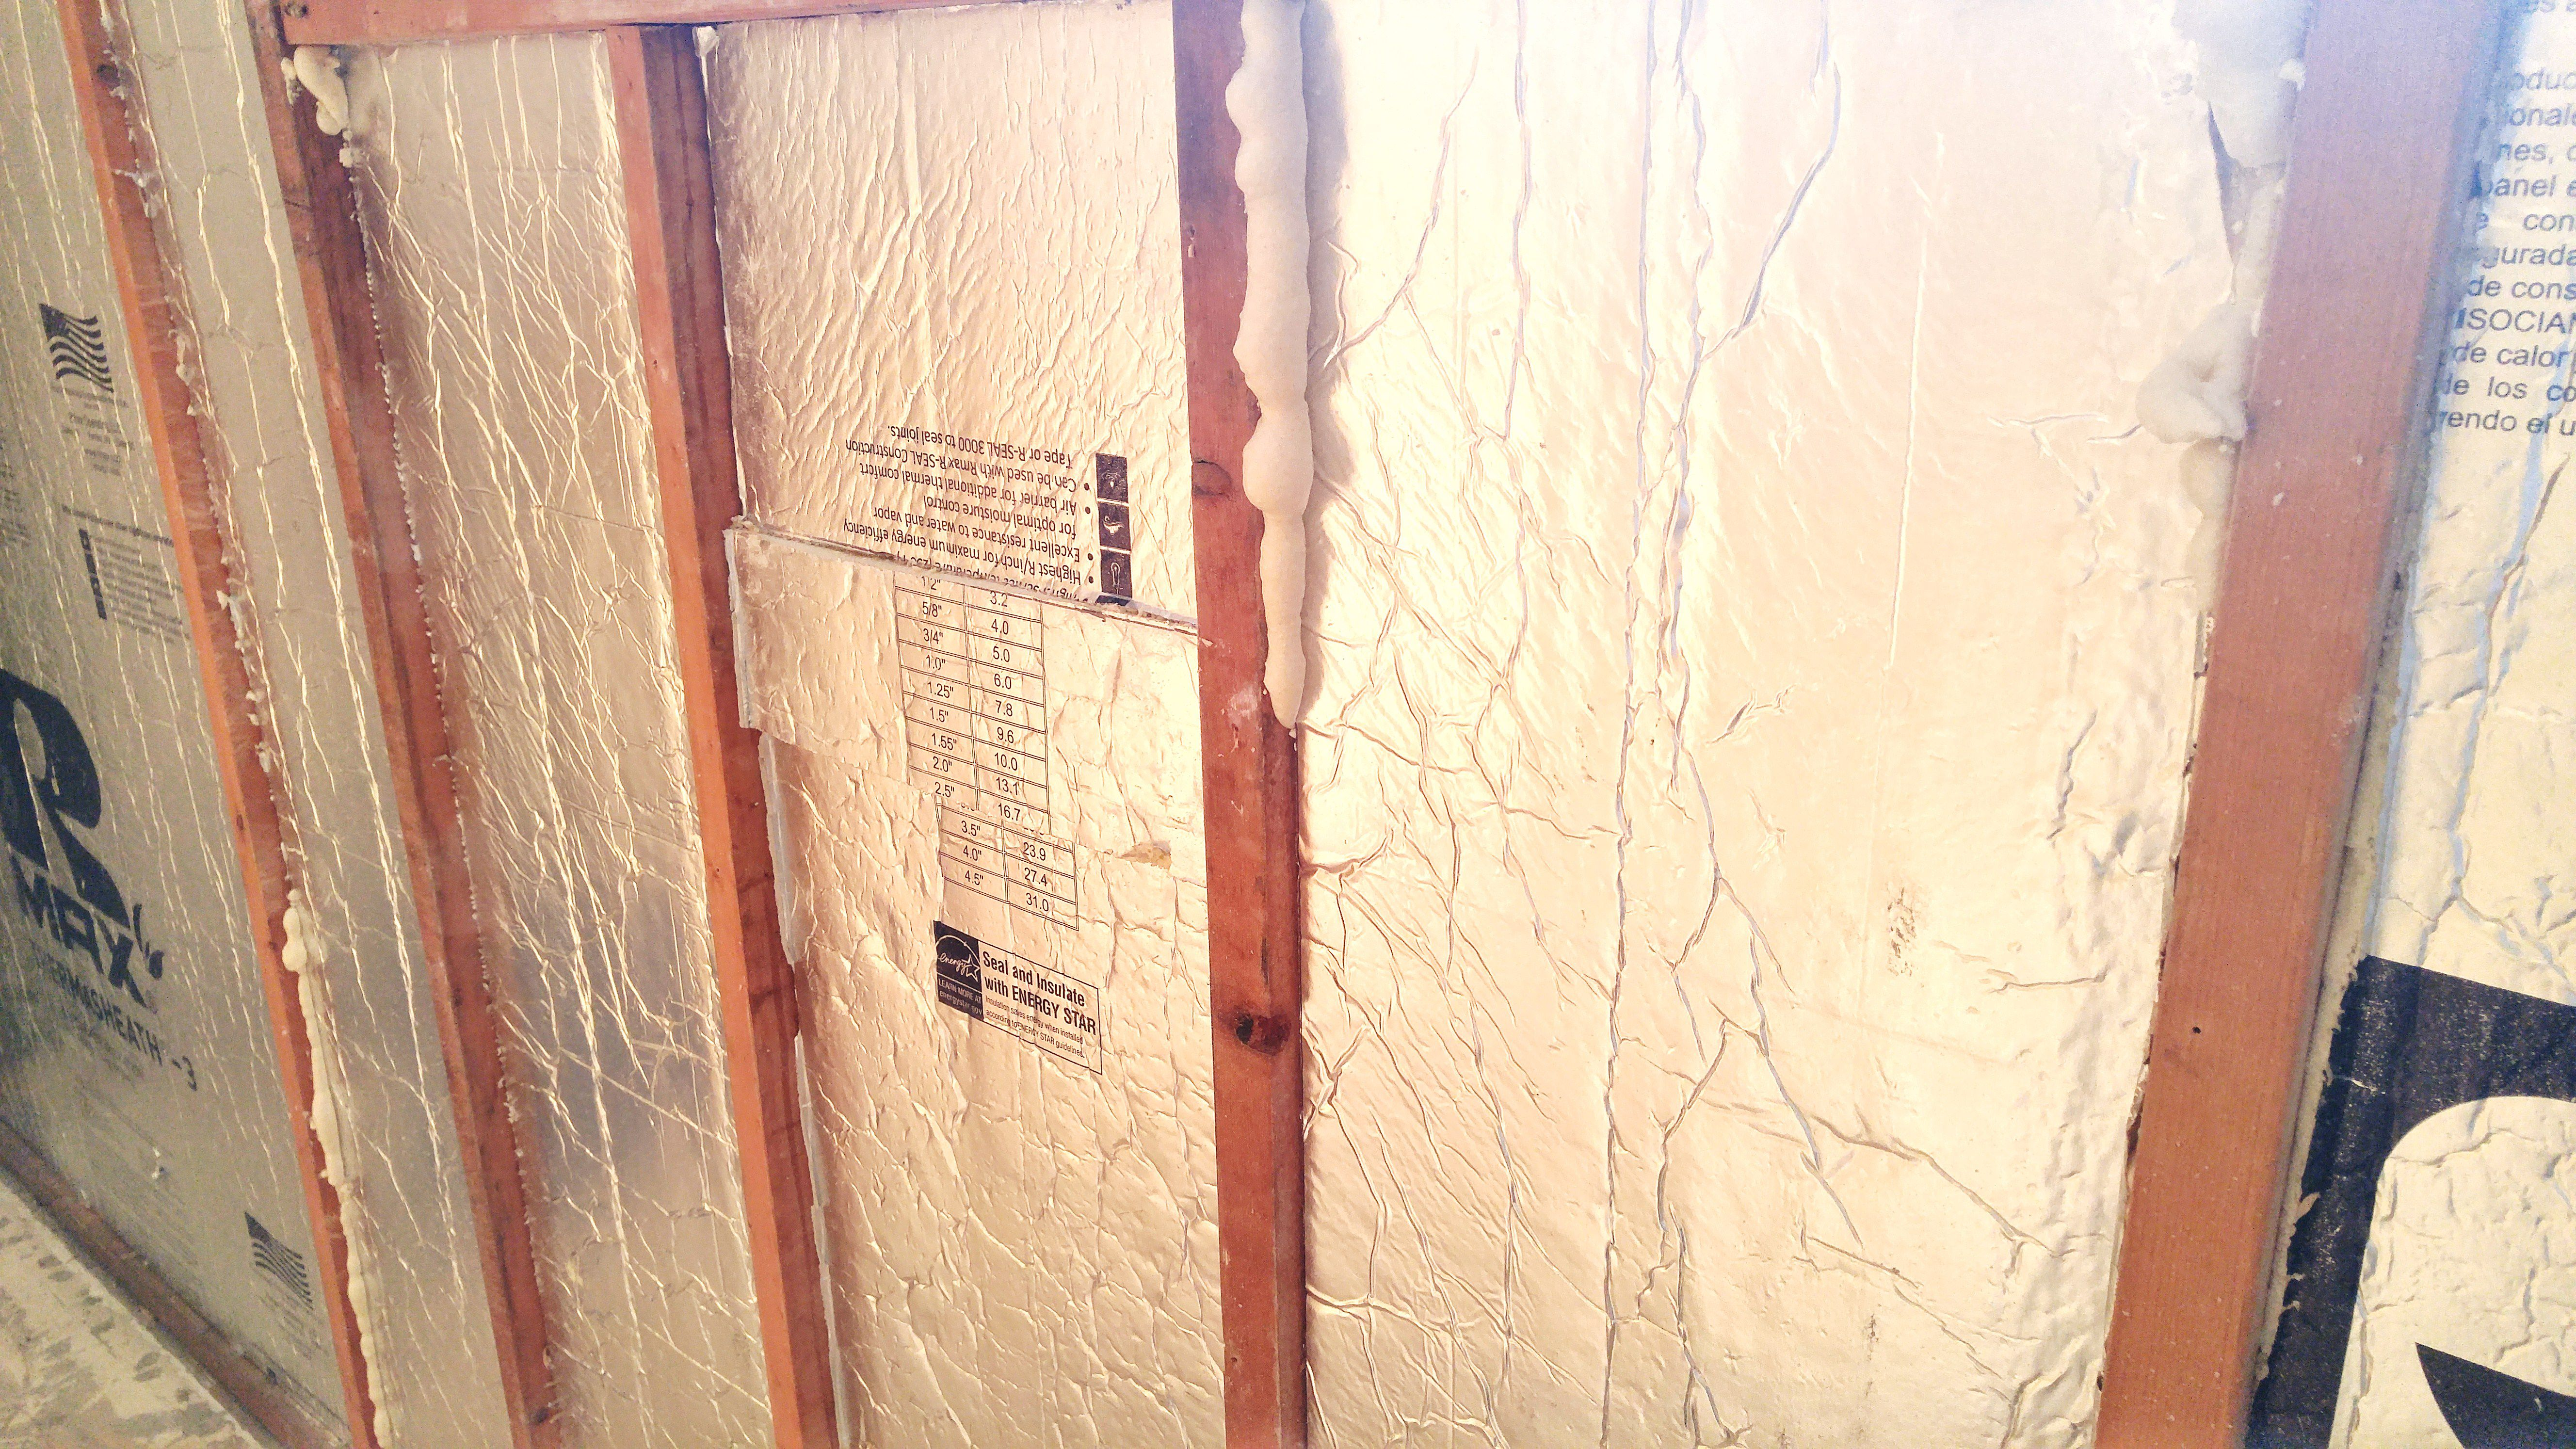 Insulate Between Walls With Rigid Foam